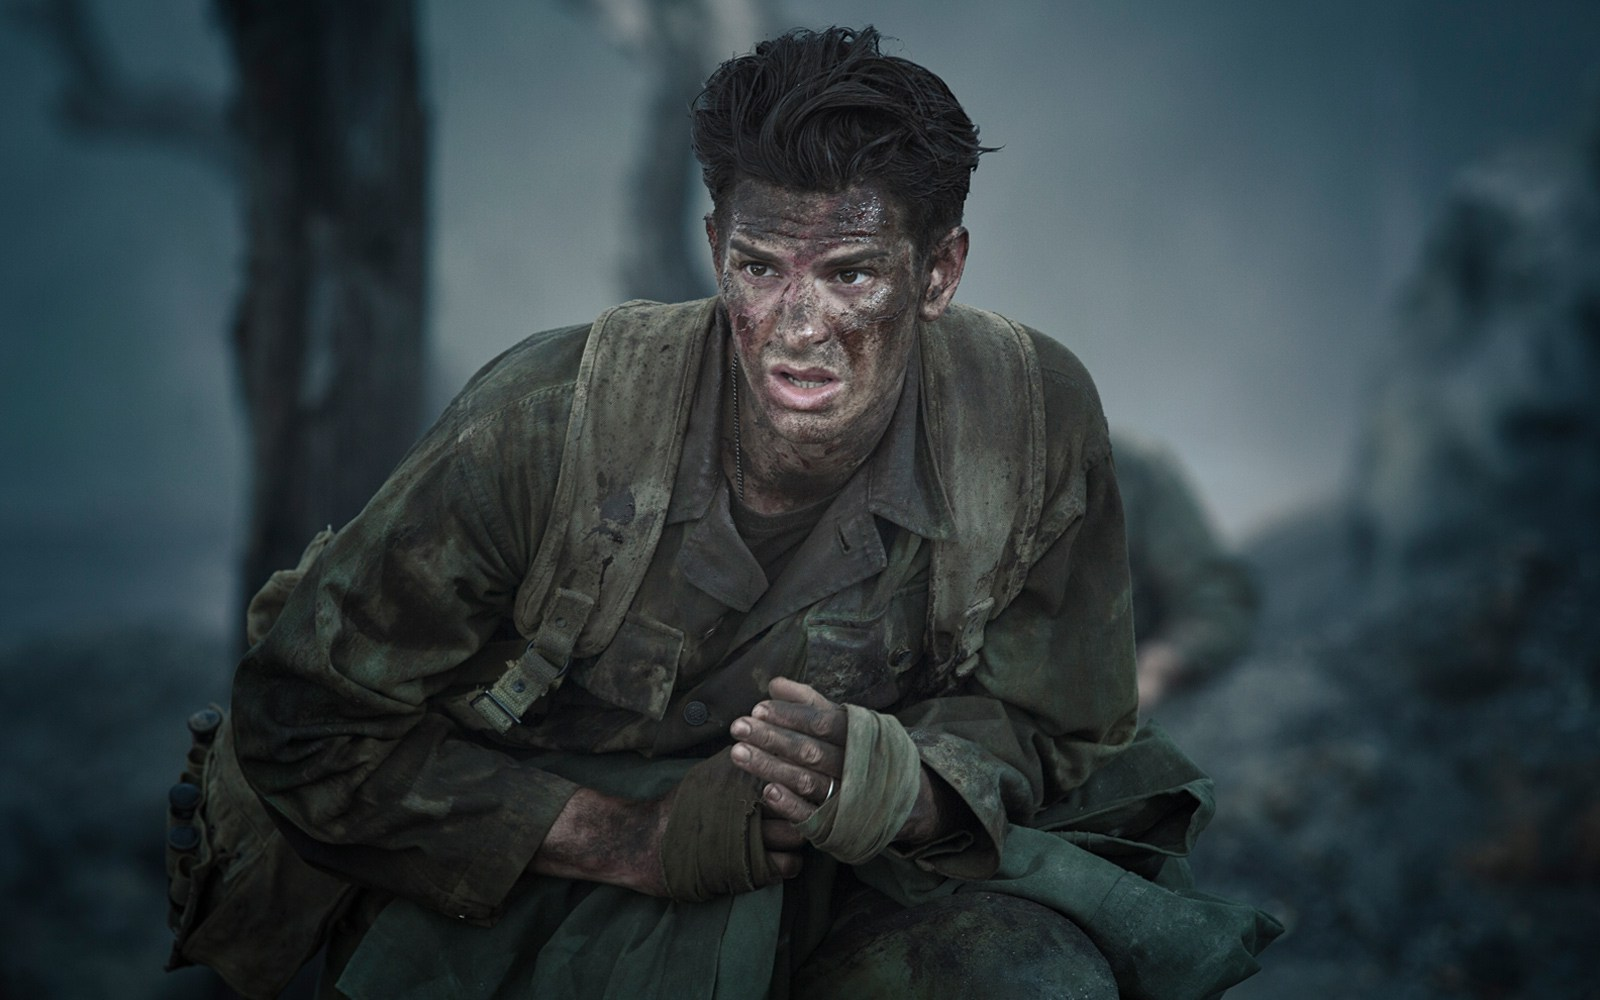 Andrew Garfield as Private Desmond Doss.